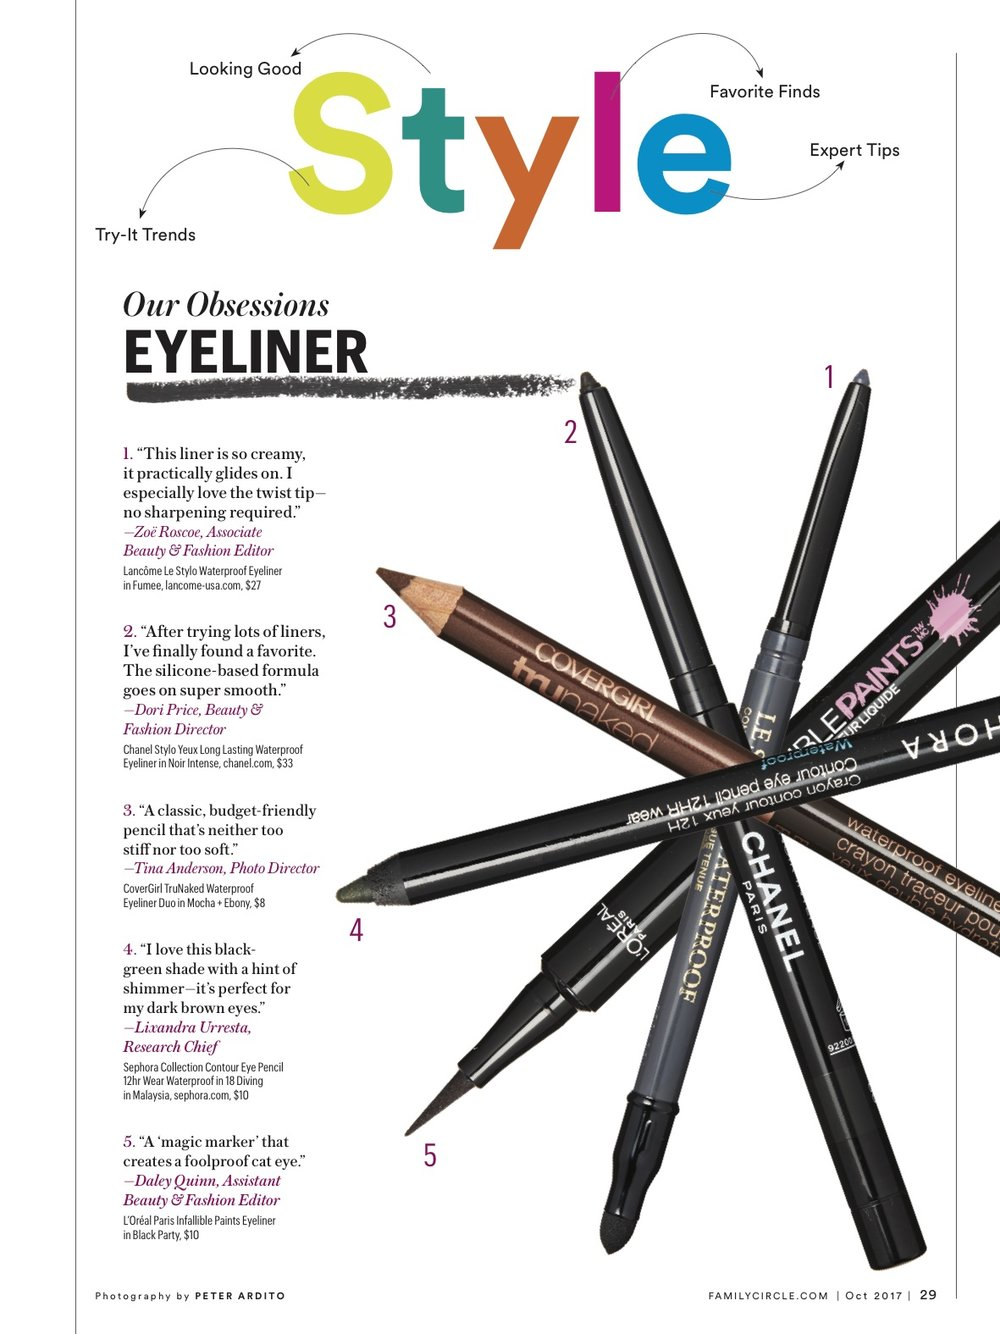 Our Obsessions: Eyeliner — DALEY QUINN